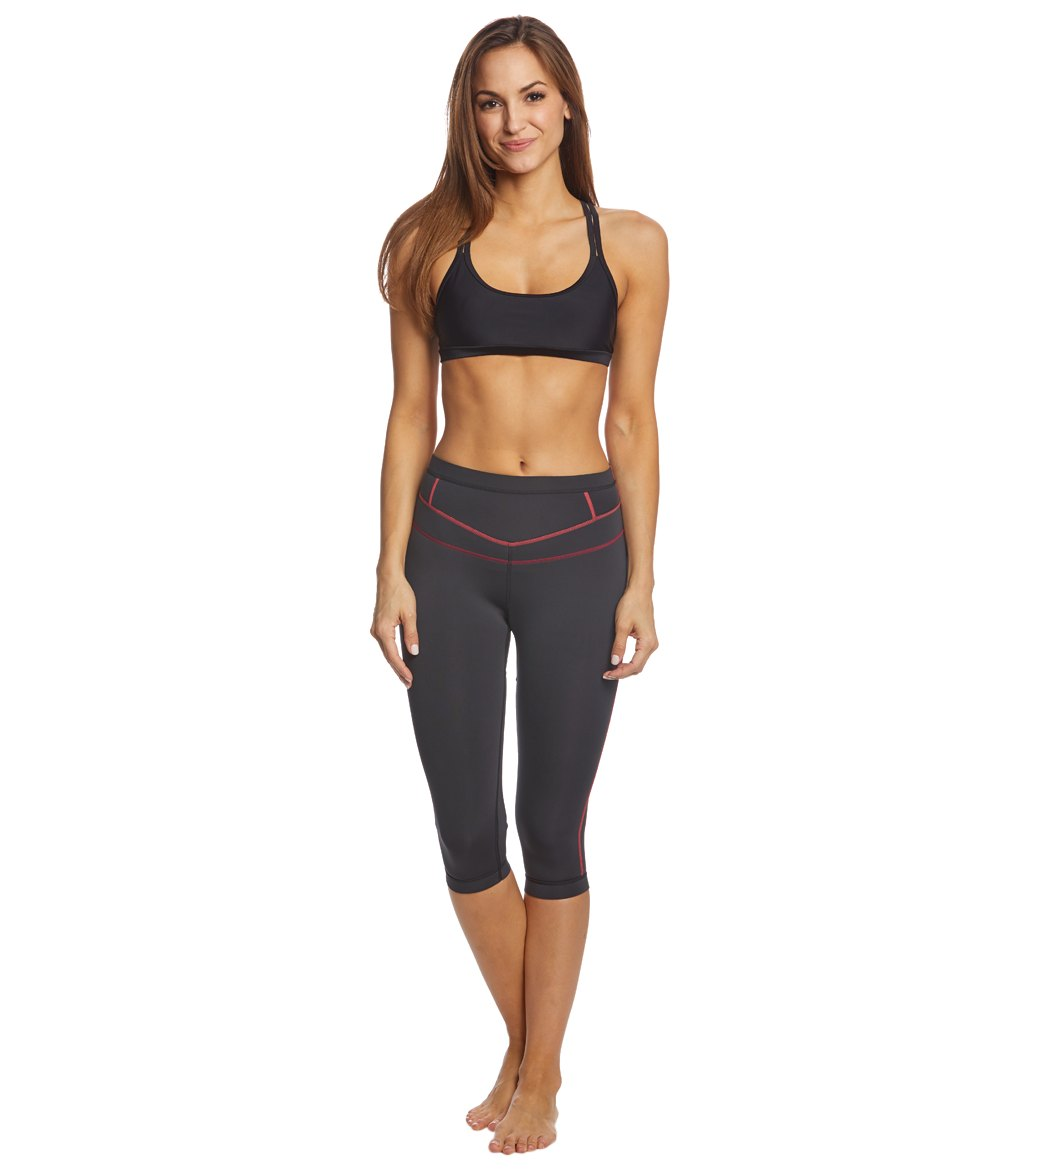 Prana Ara Swim Tight at SwimOutlet.com - Free Shipping 6a4e0a8d6